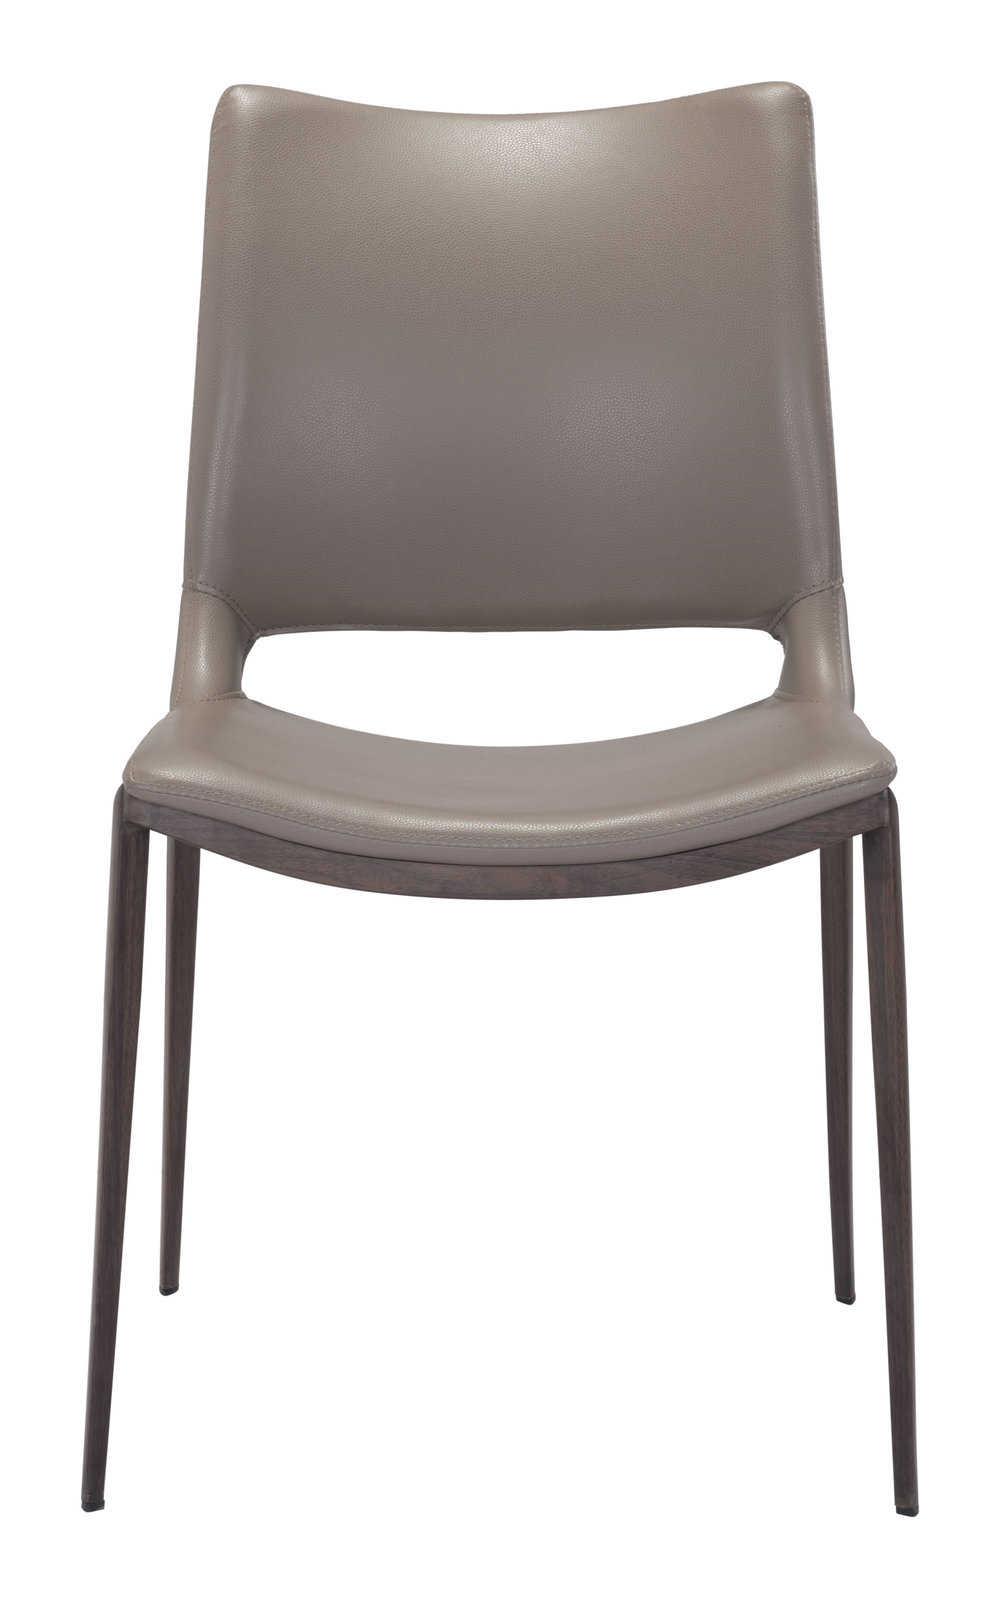 Zuo Modern Contemporary - Ace Dining Chair - Set of 2 - Gray & Walnut